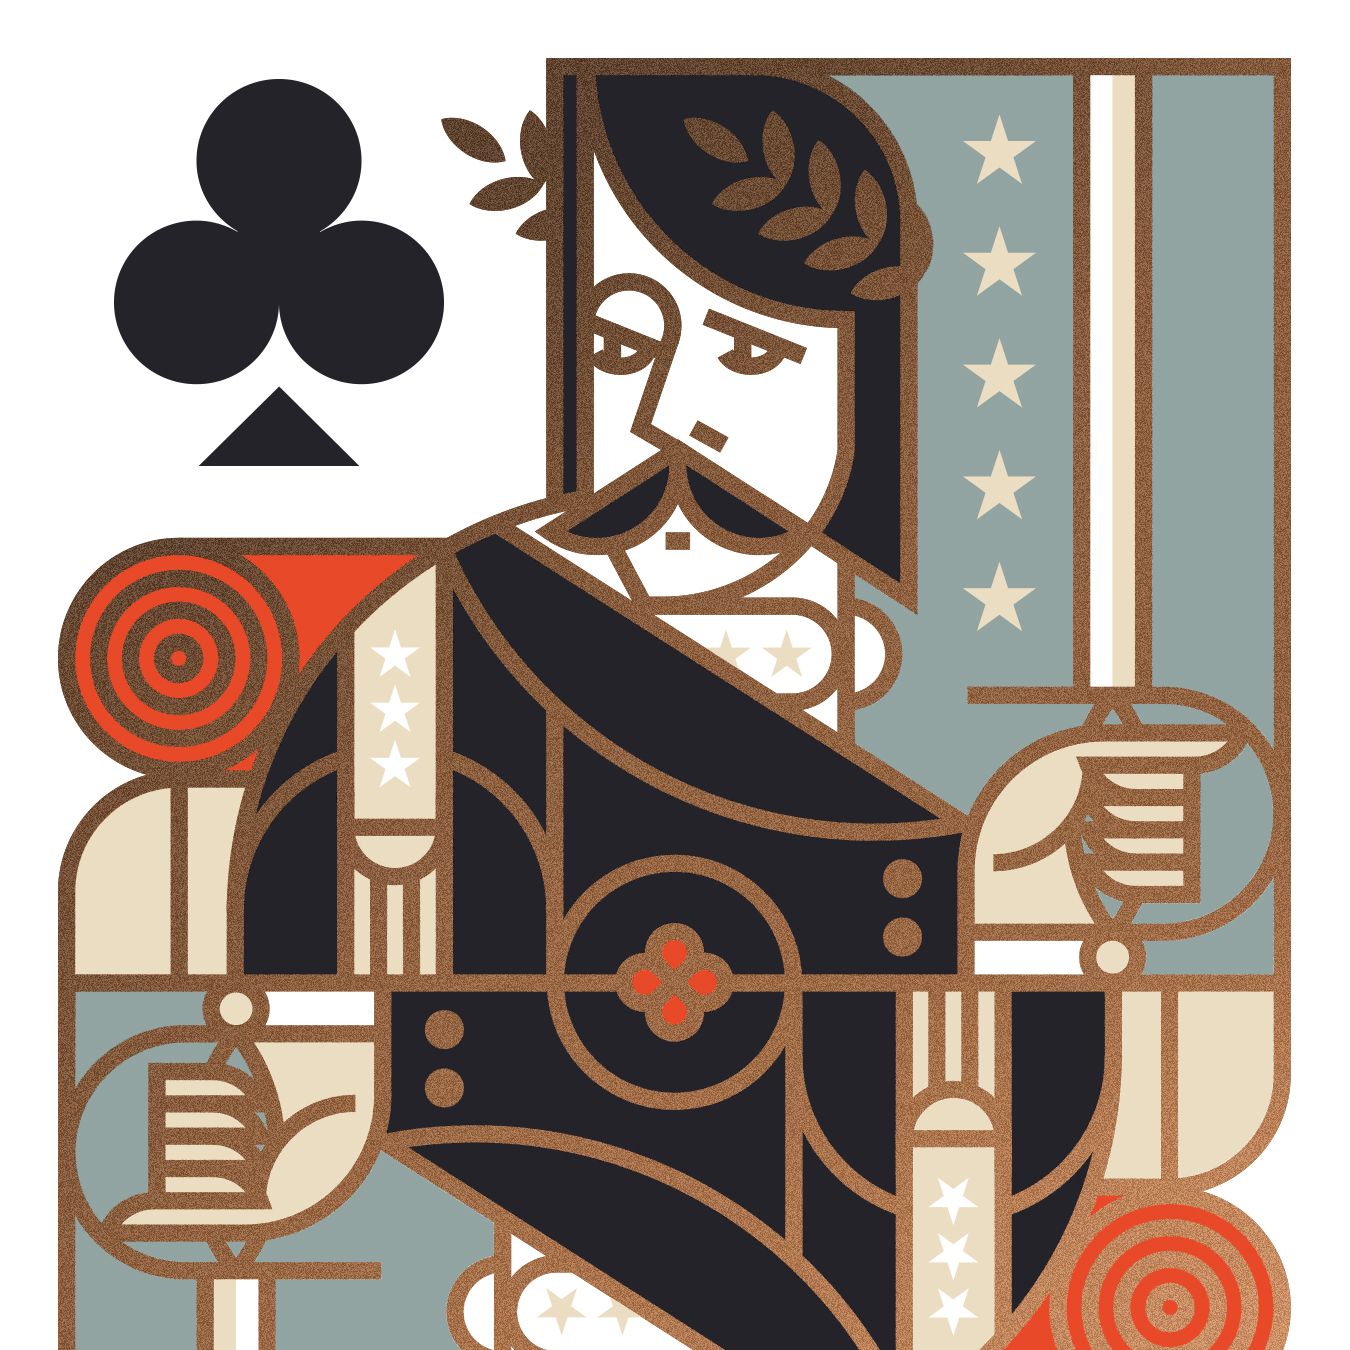 Union Playing Card King of Clubs Illustration